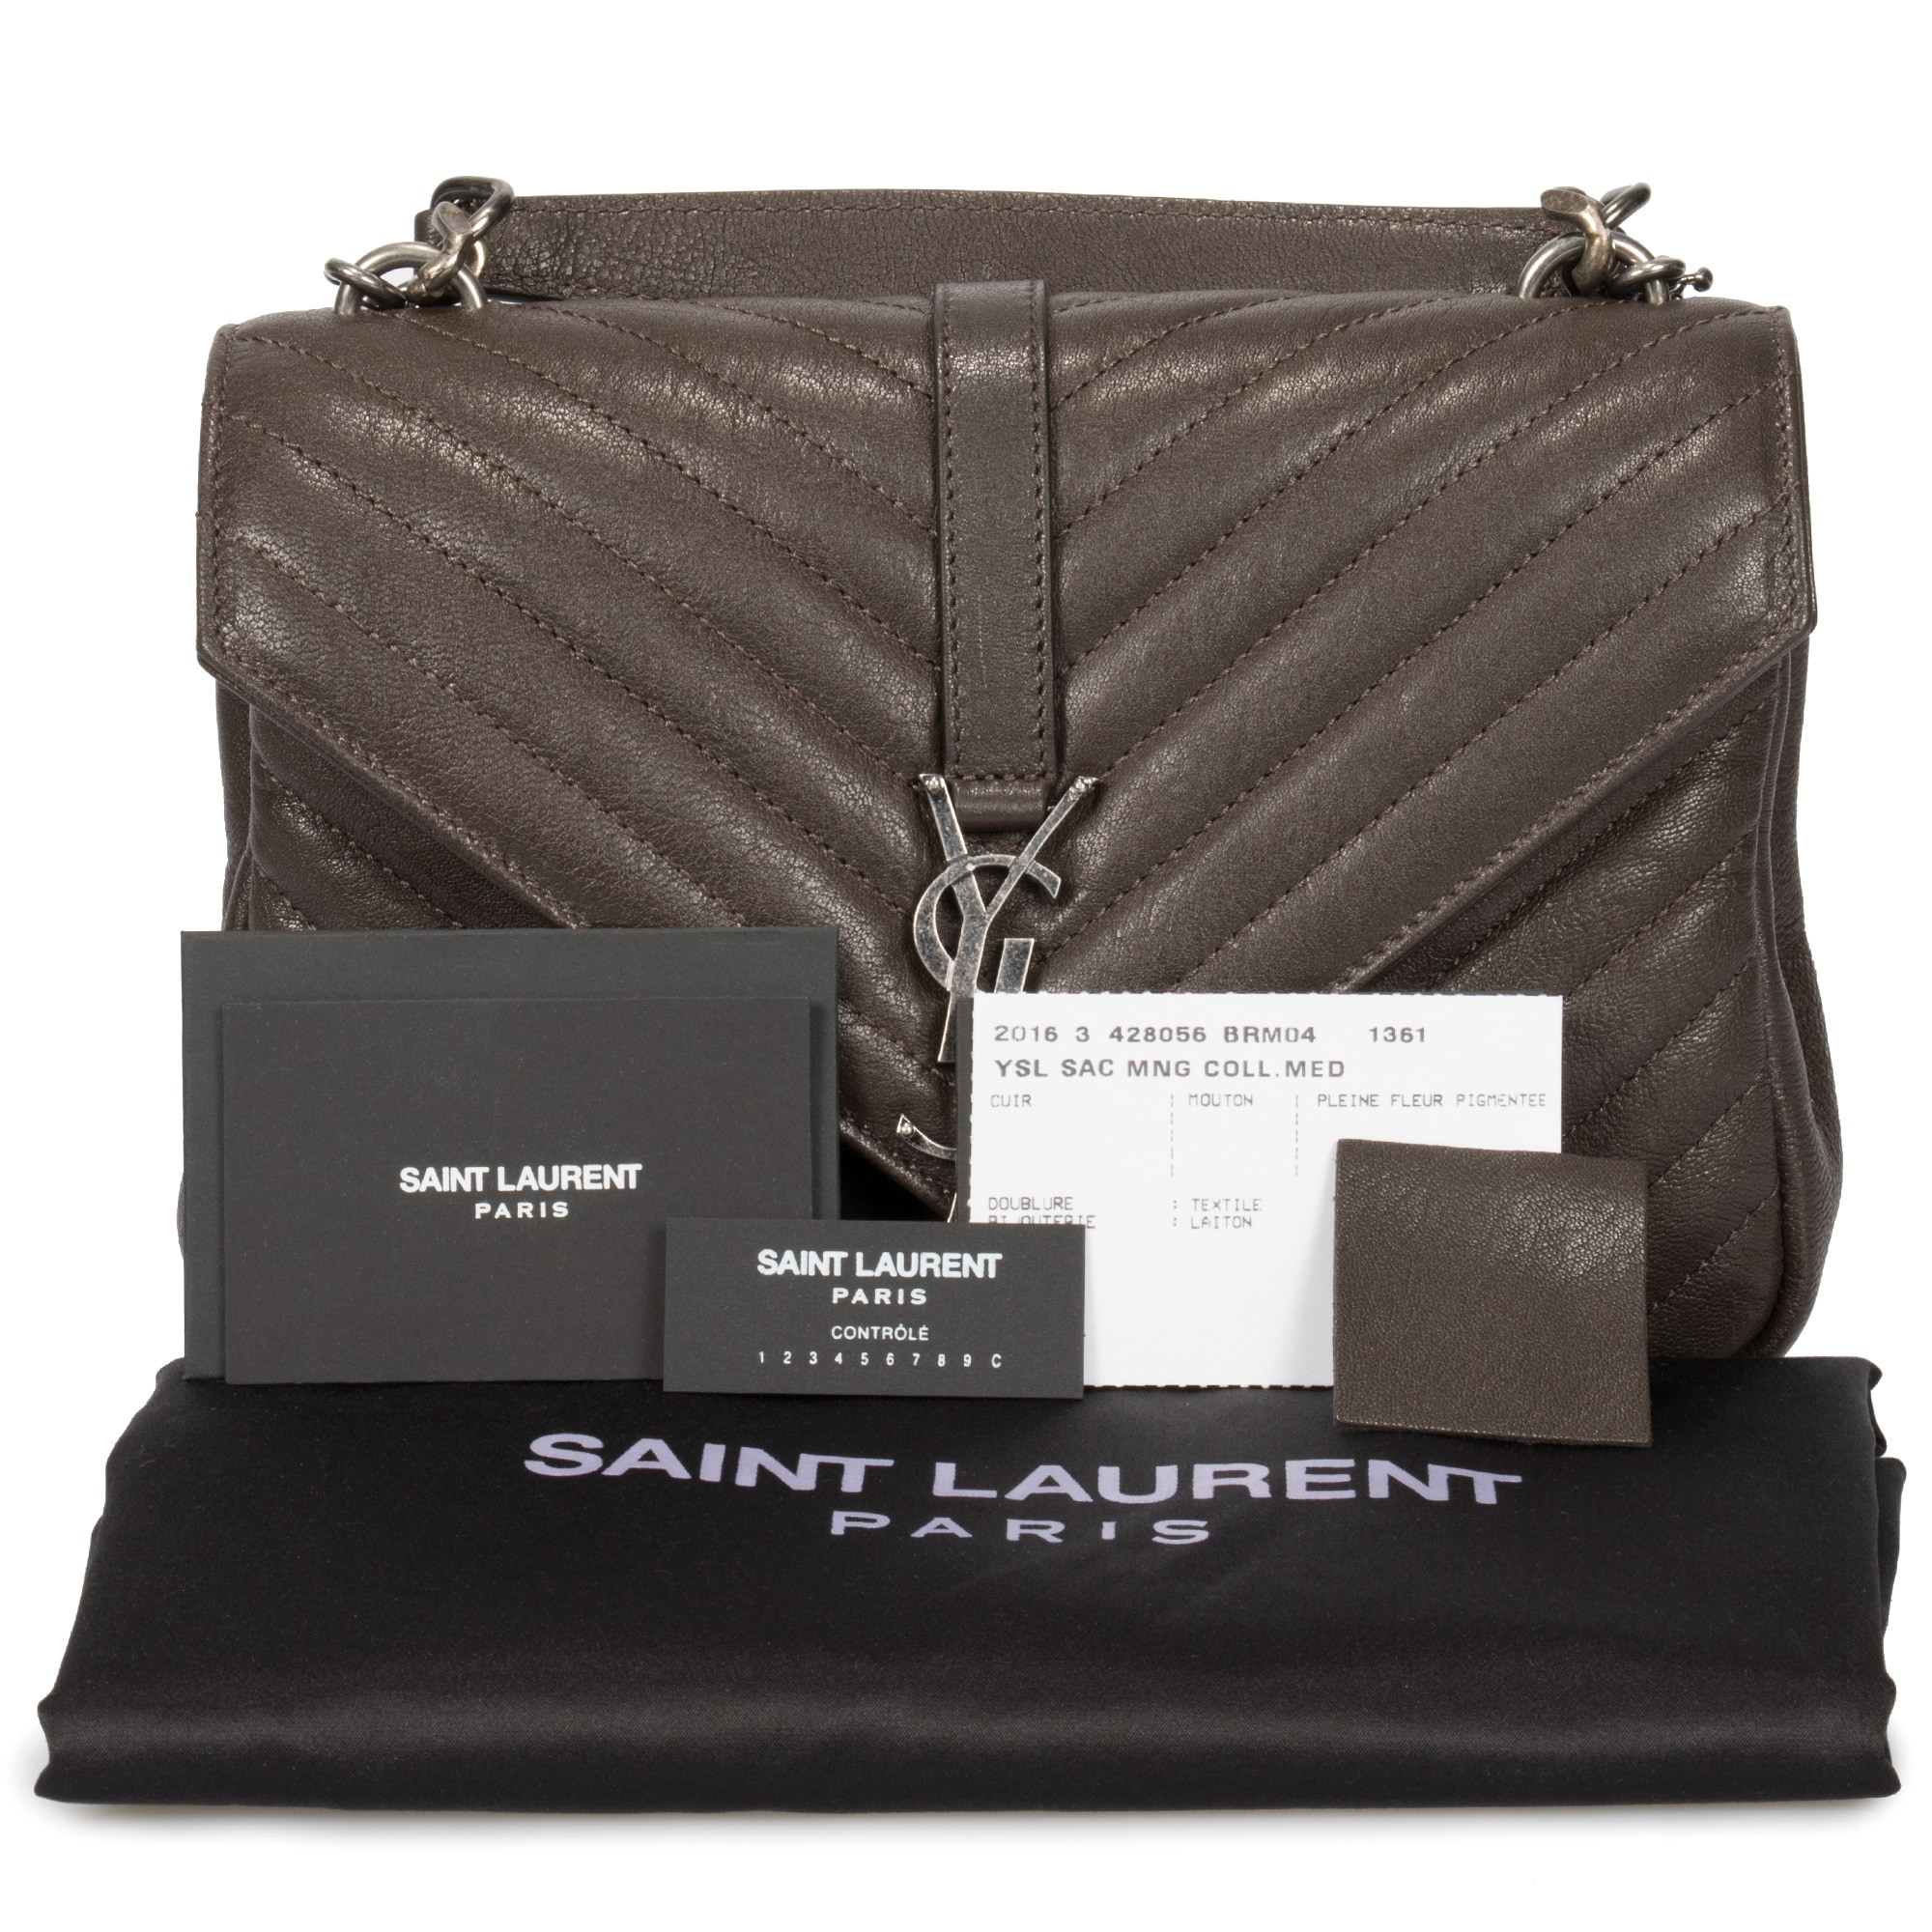 7a5d453adc0 Shop Saint Laurent Classic Medium College Bag In Brown Matelasse Leather - Free  Shipping Today - Overstock - 23085778